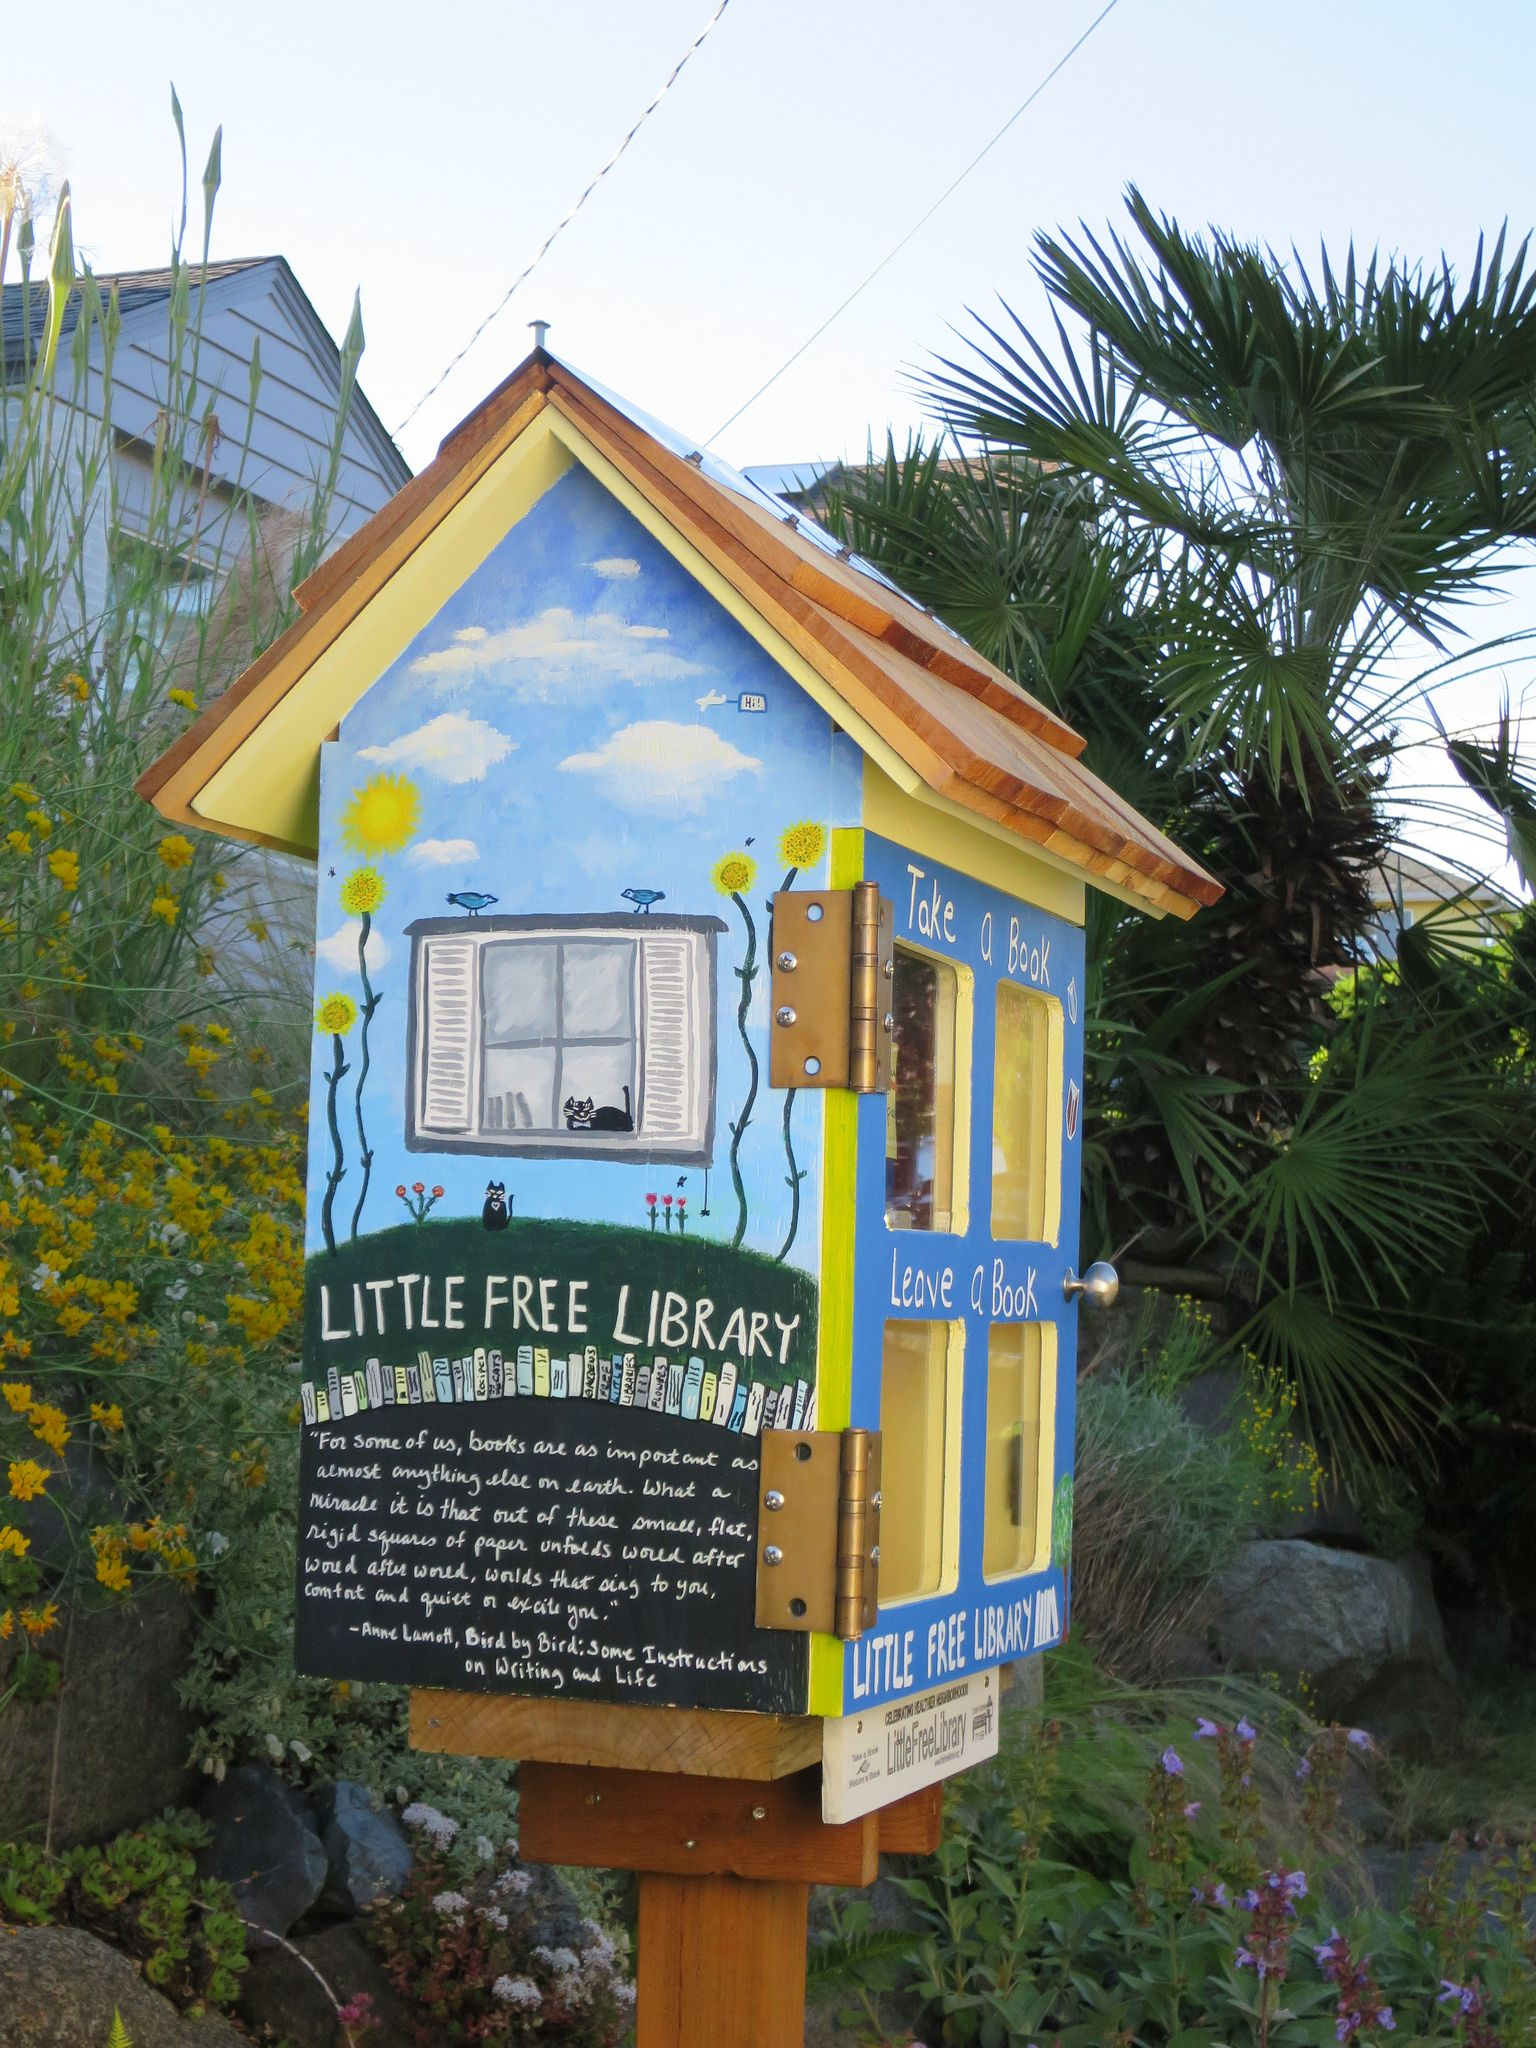 WASHINGTON, Seattle 7159 Little free libraries, Little